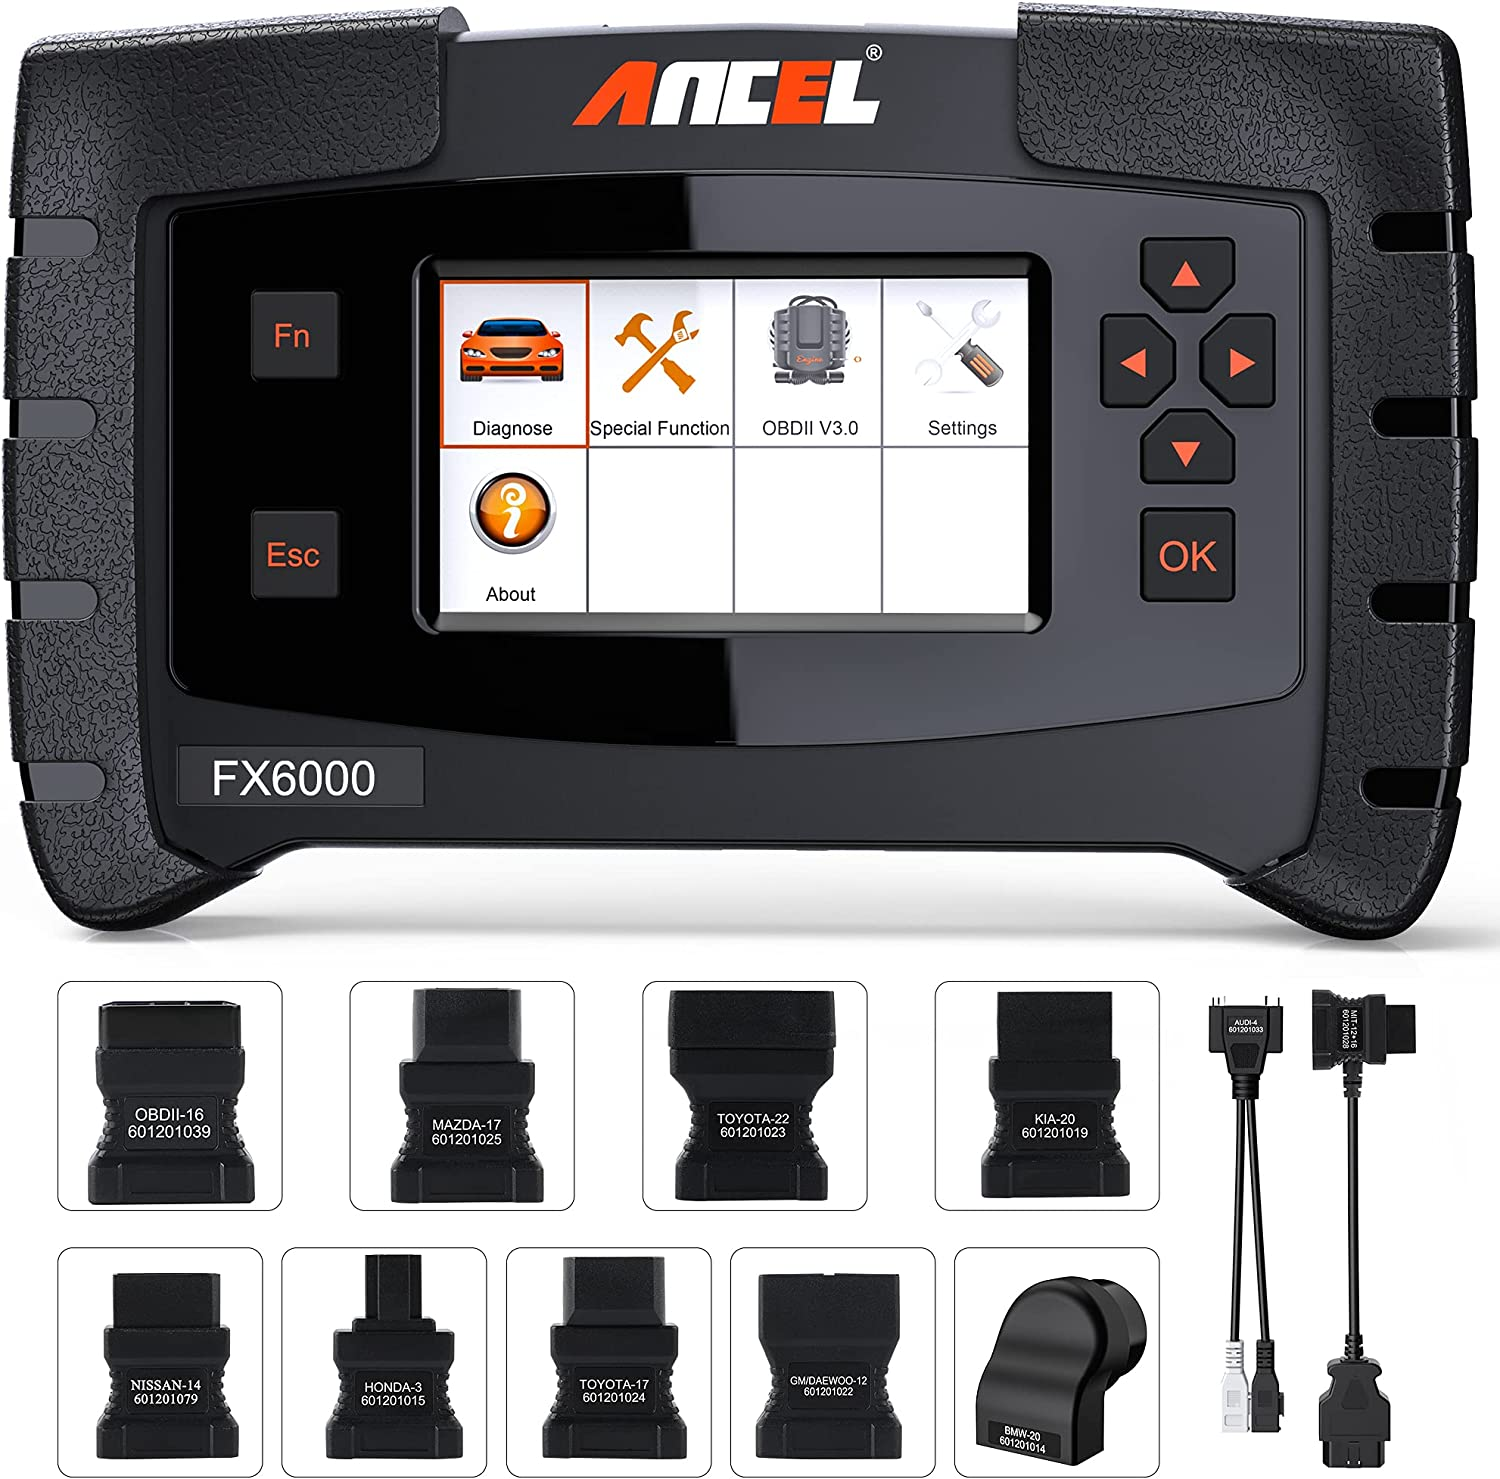 Ancle FX6000